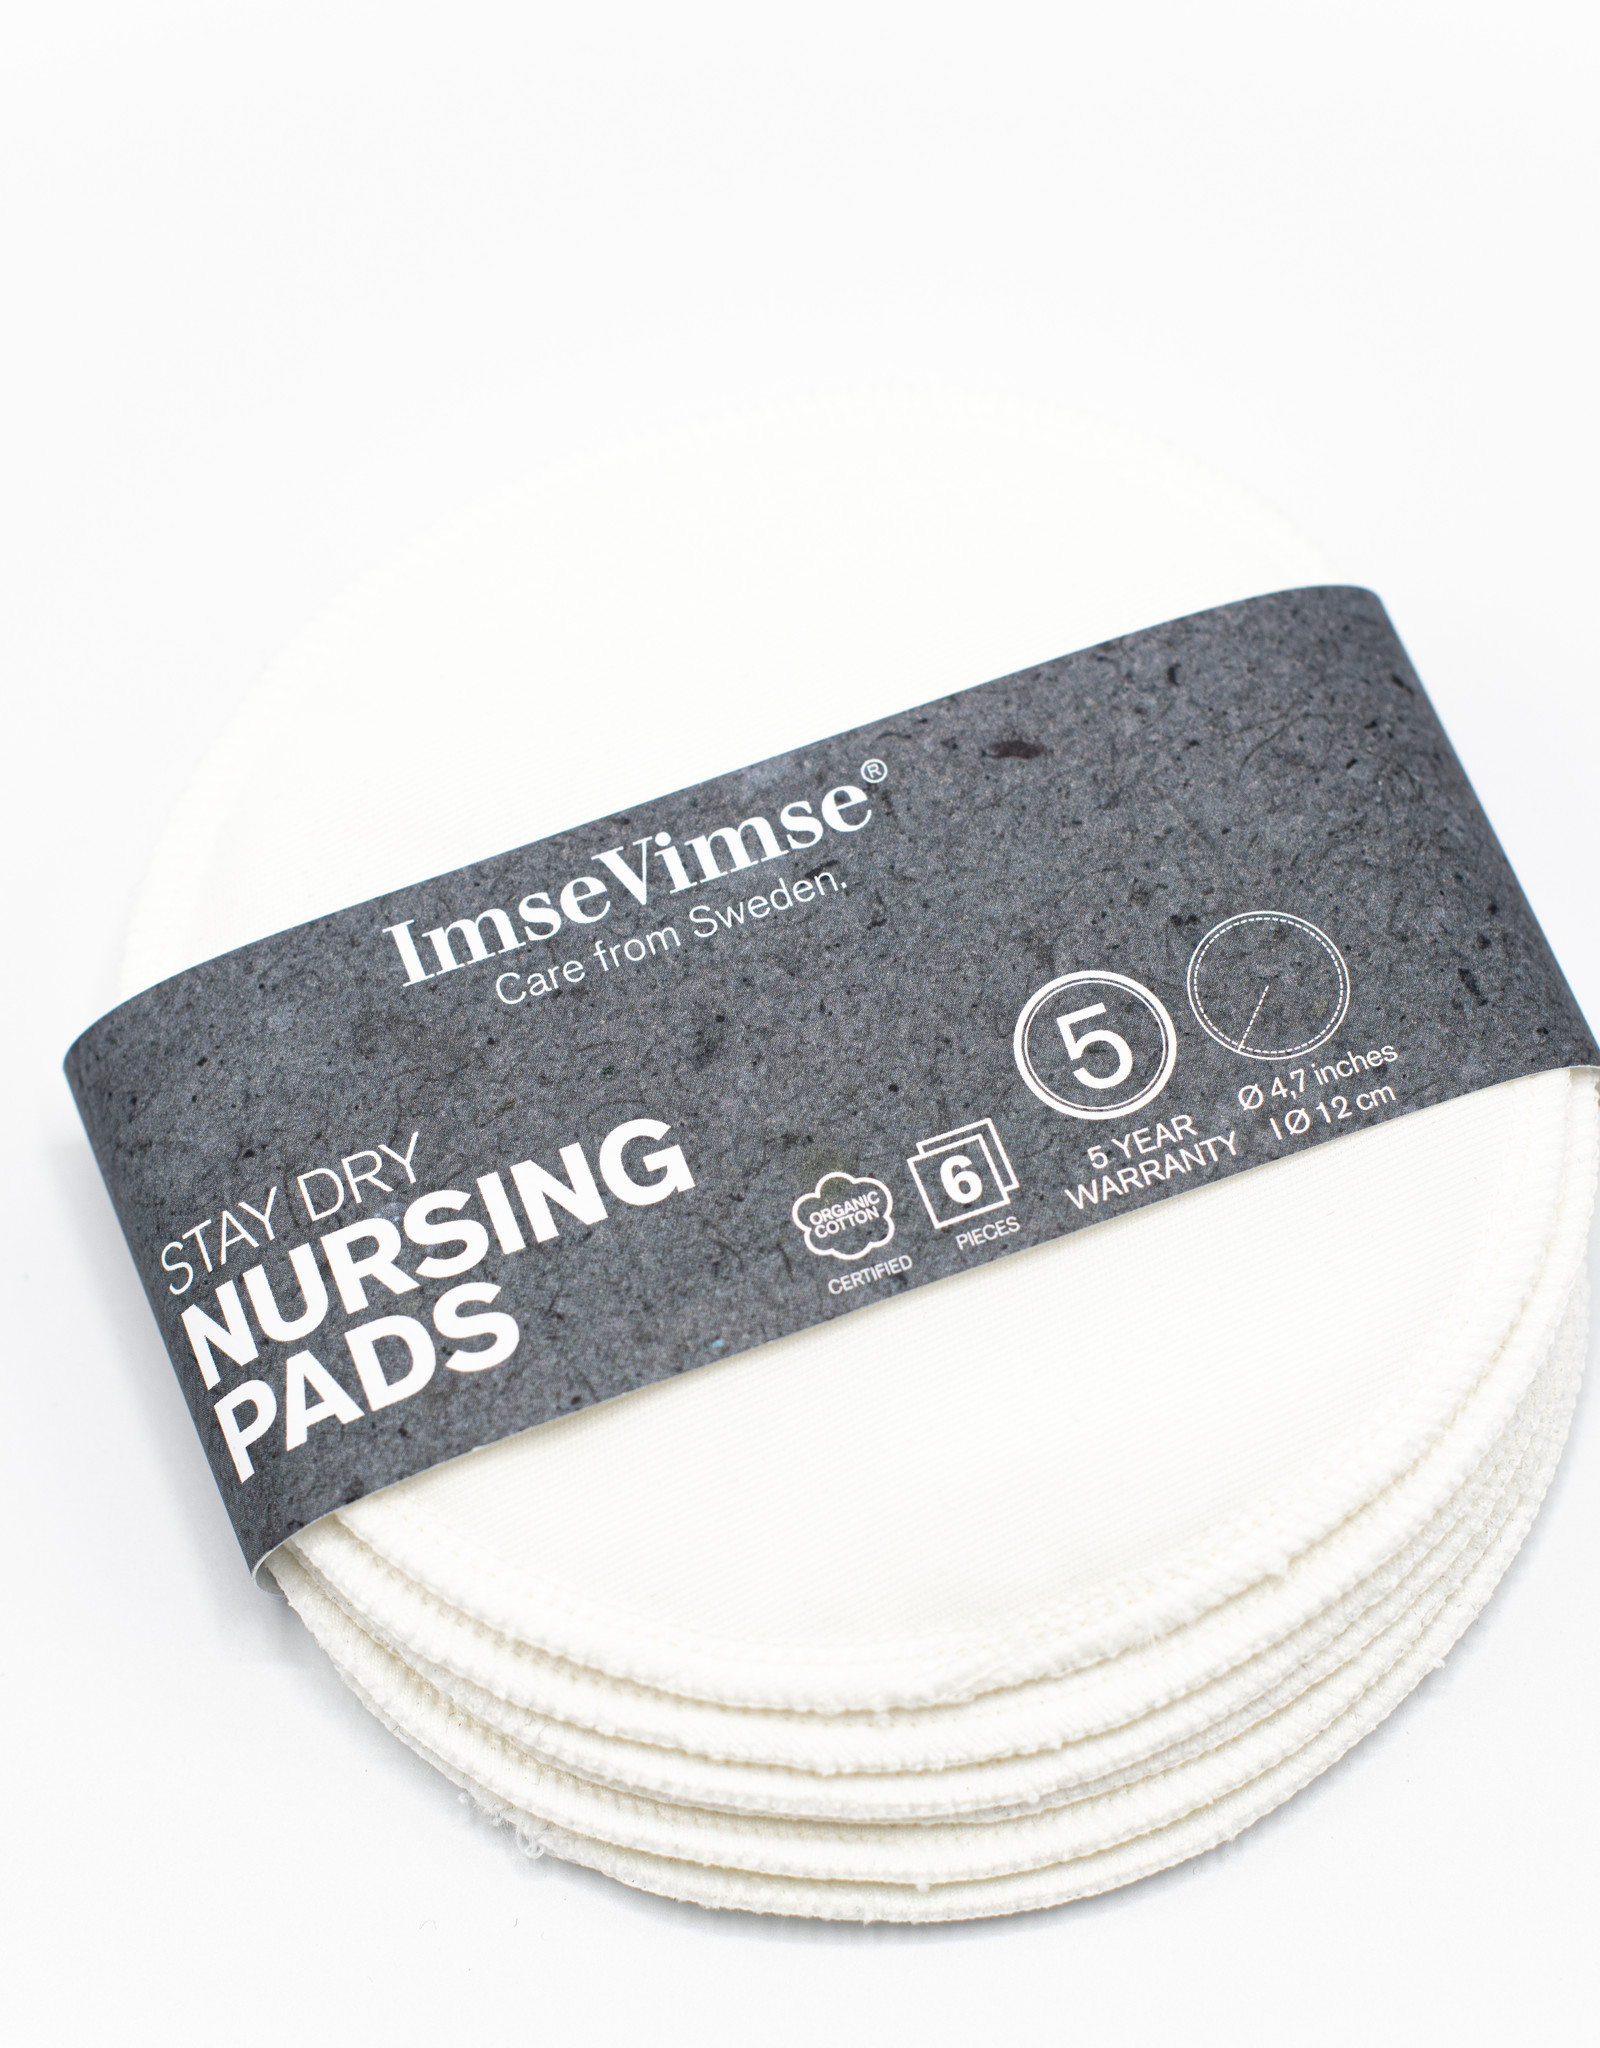 Stay dry nursing pads